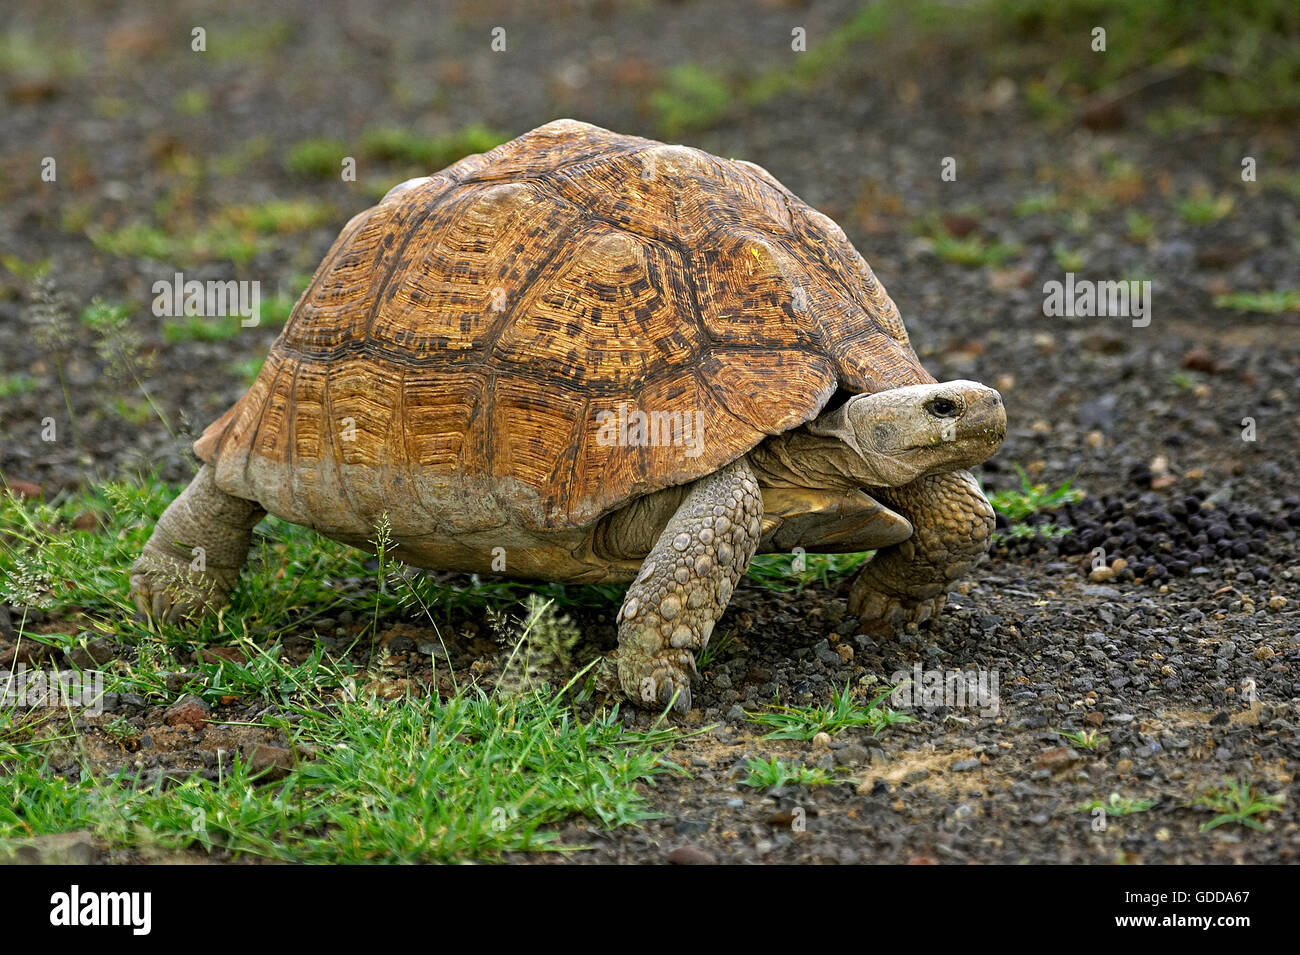 Leopard Tortoise, geochelone pardalis, Adult on Grass, Kenya - Stock Image